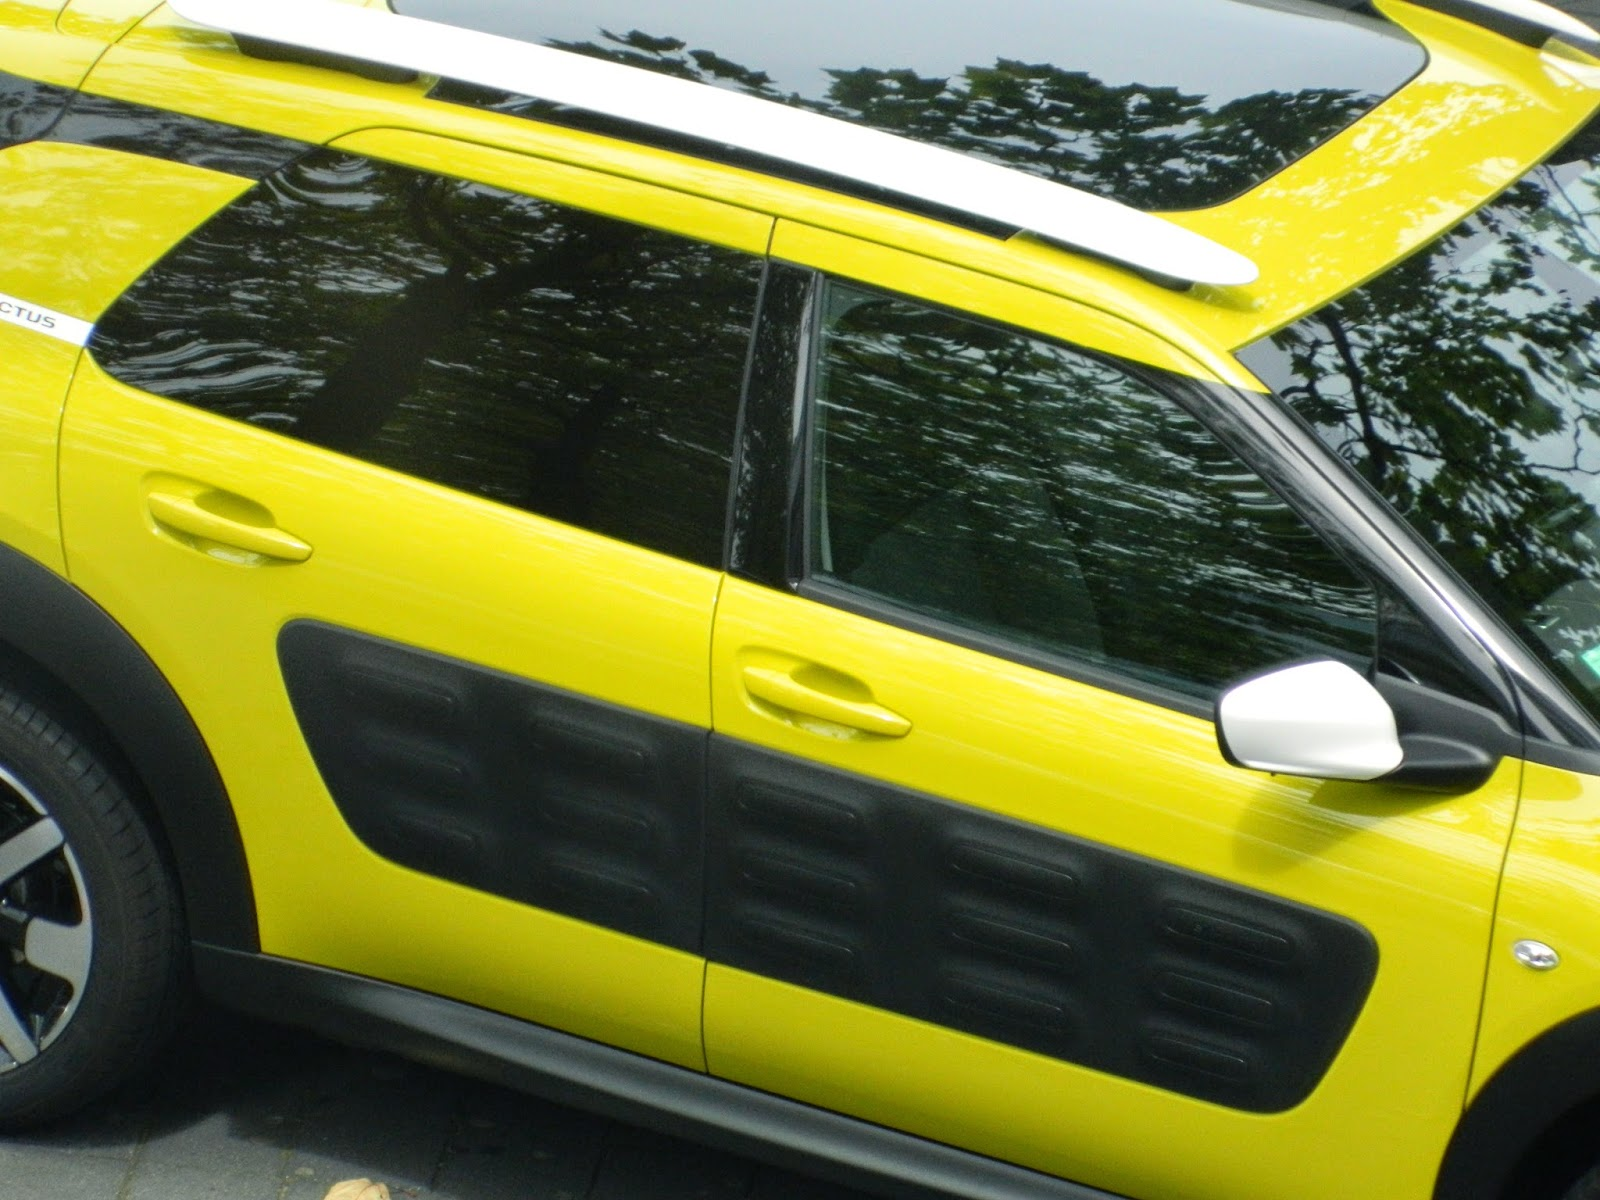 Citroen C4 Cactus from above